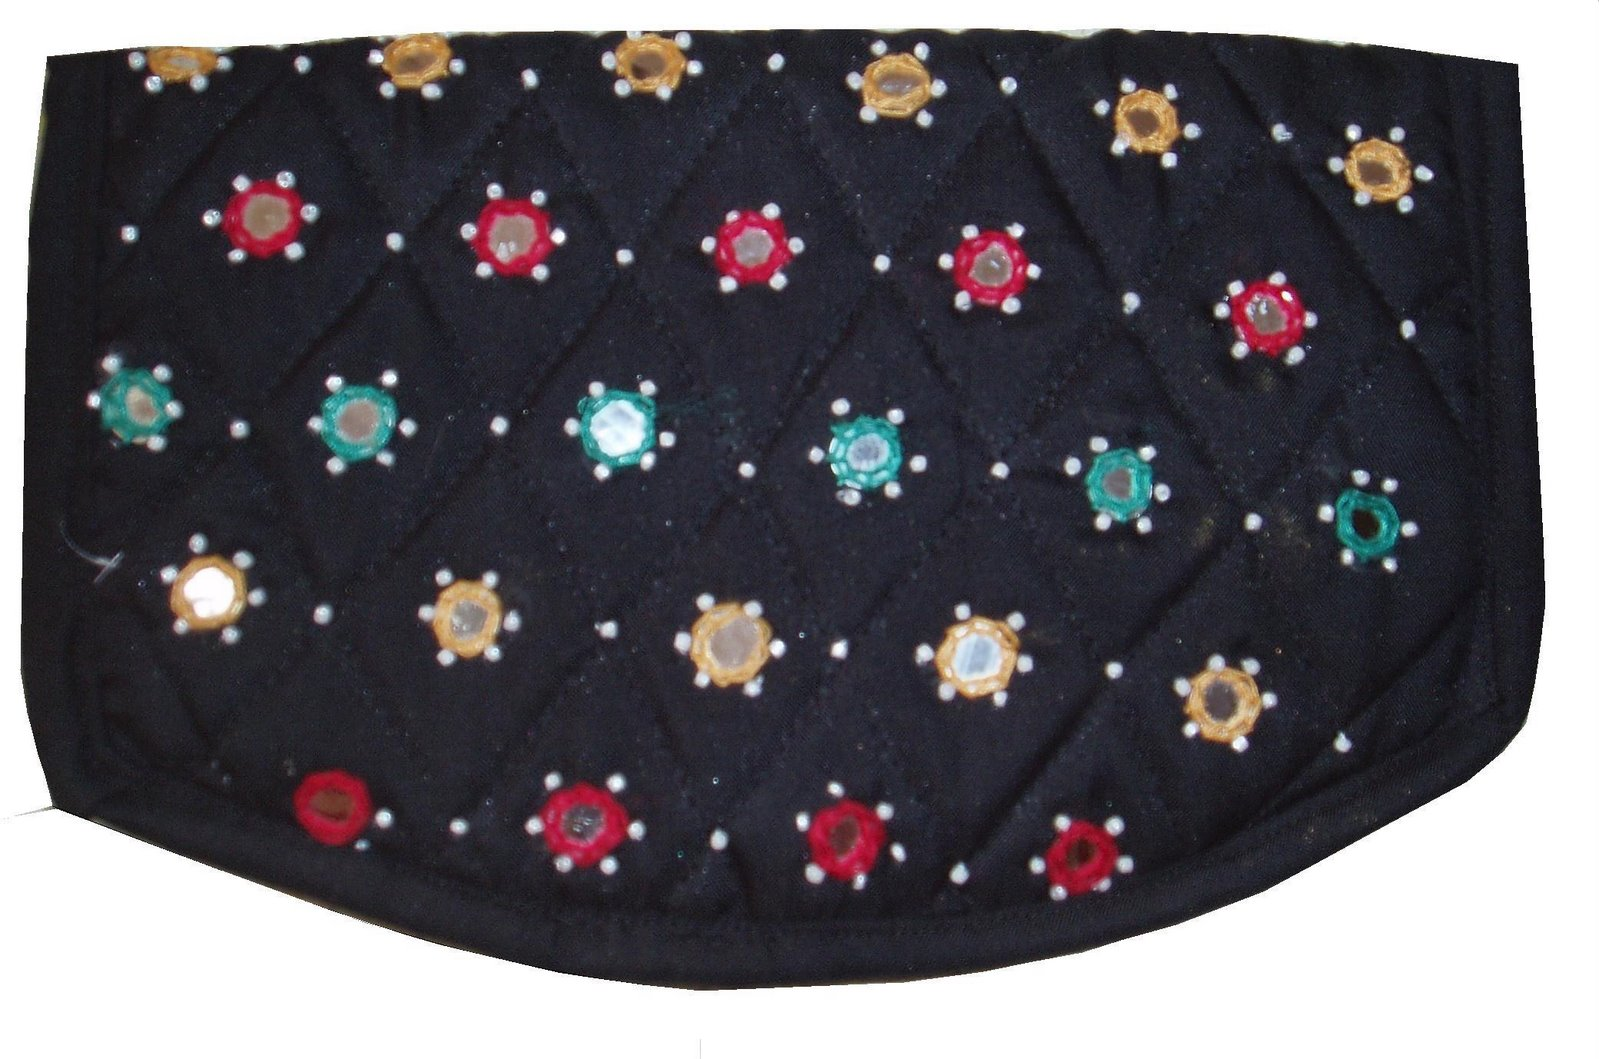 6d04845a9a Easy Crafts - Explore your creativity: Hand Purse with Mirror Work